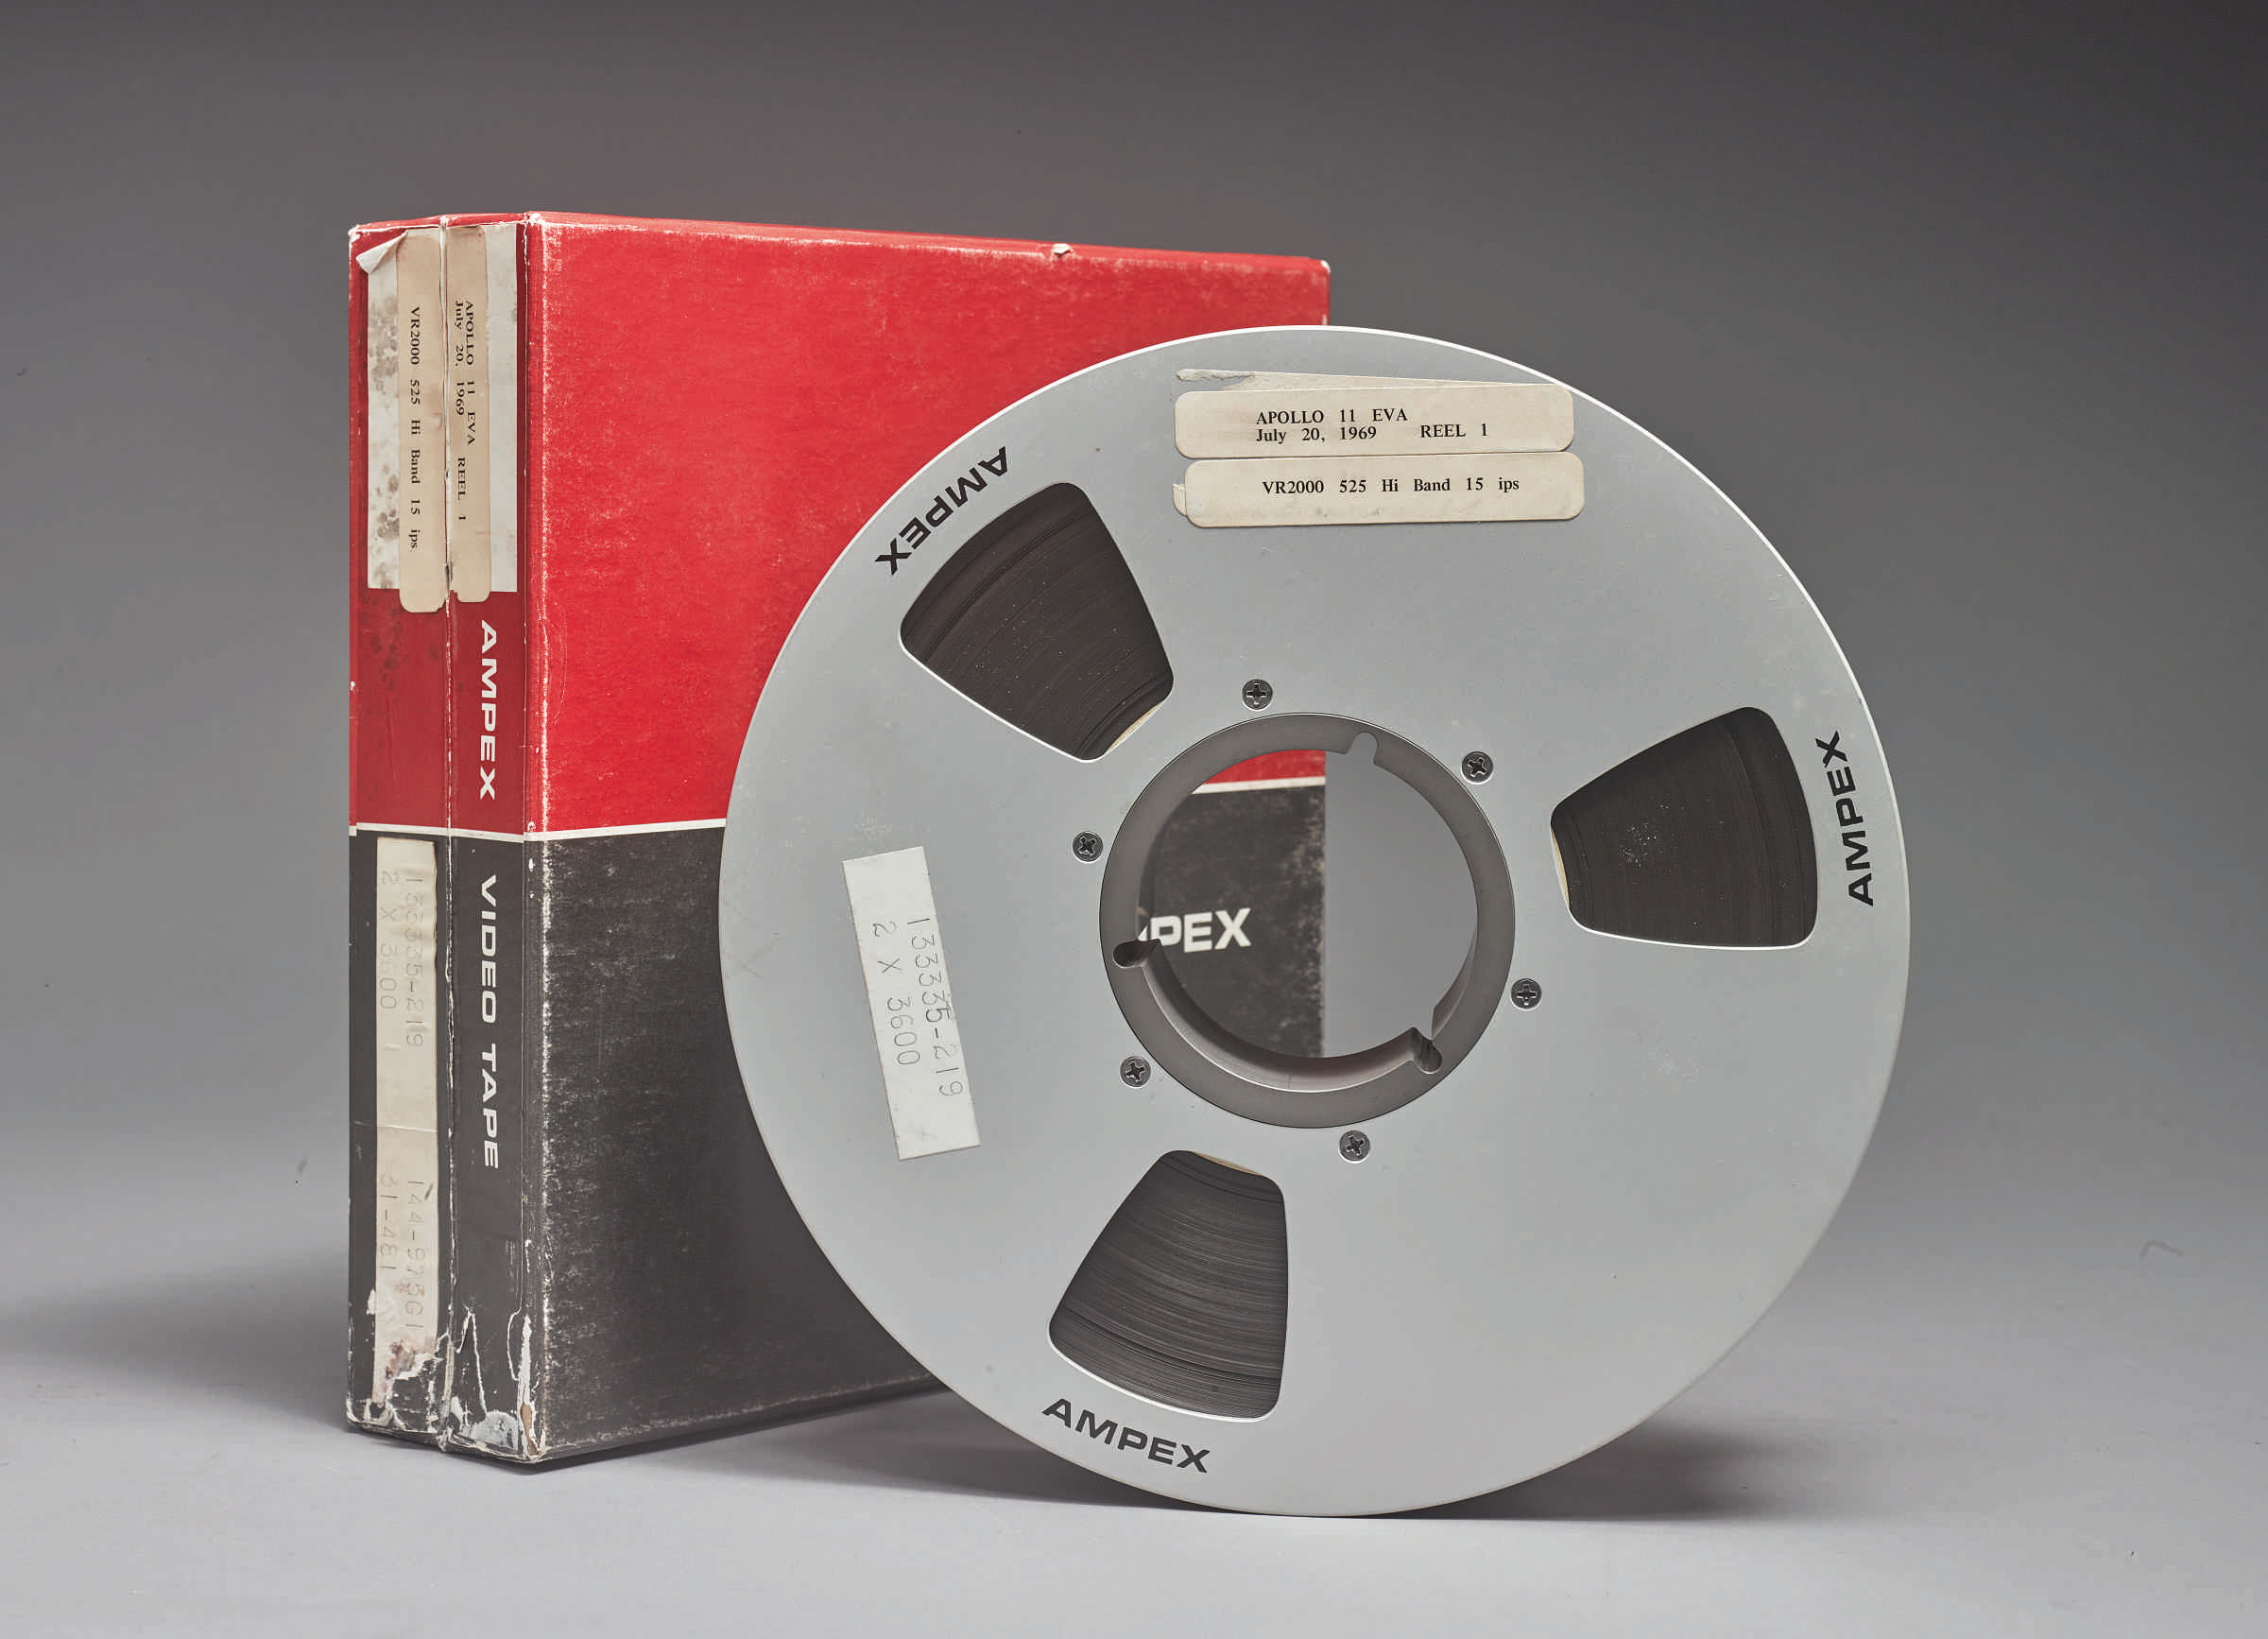 Original Apollo 11 landing videotapes sell for $1.8M